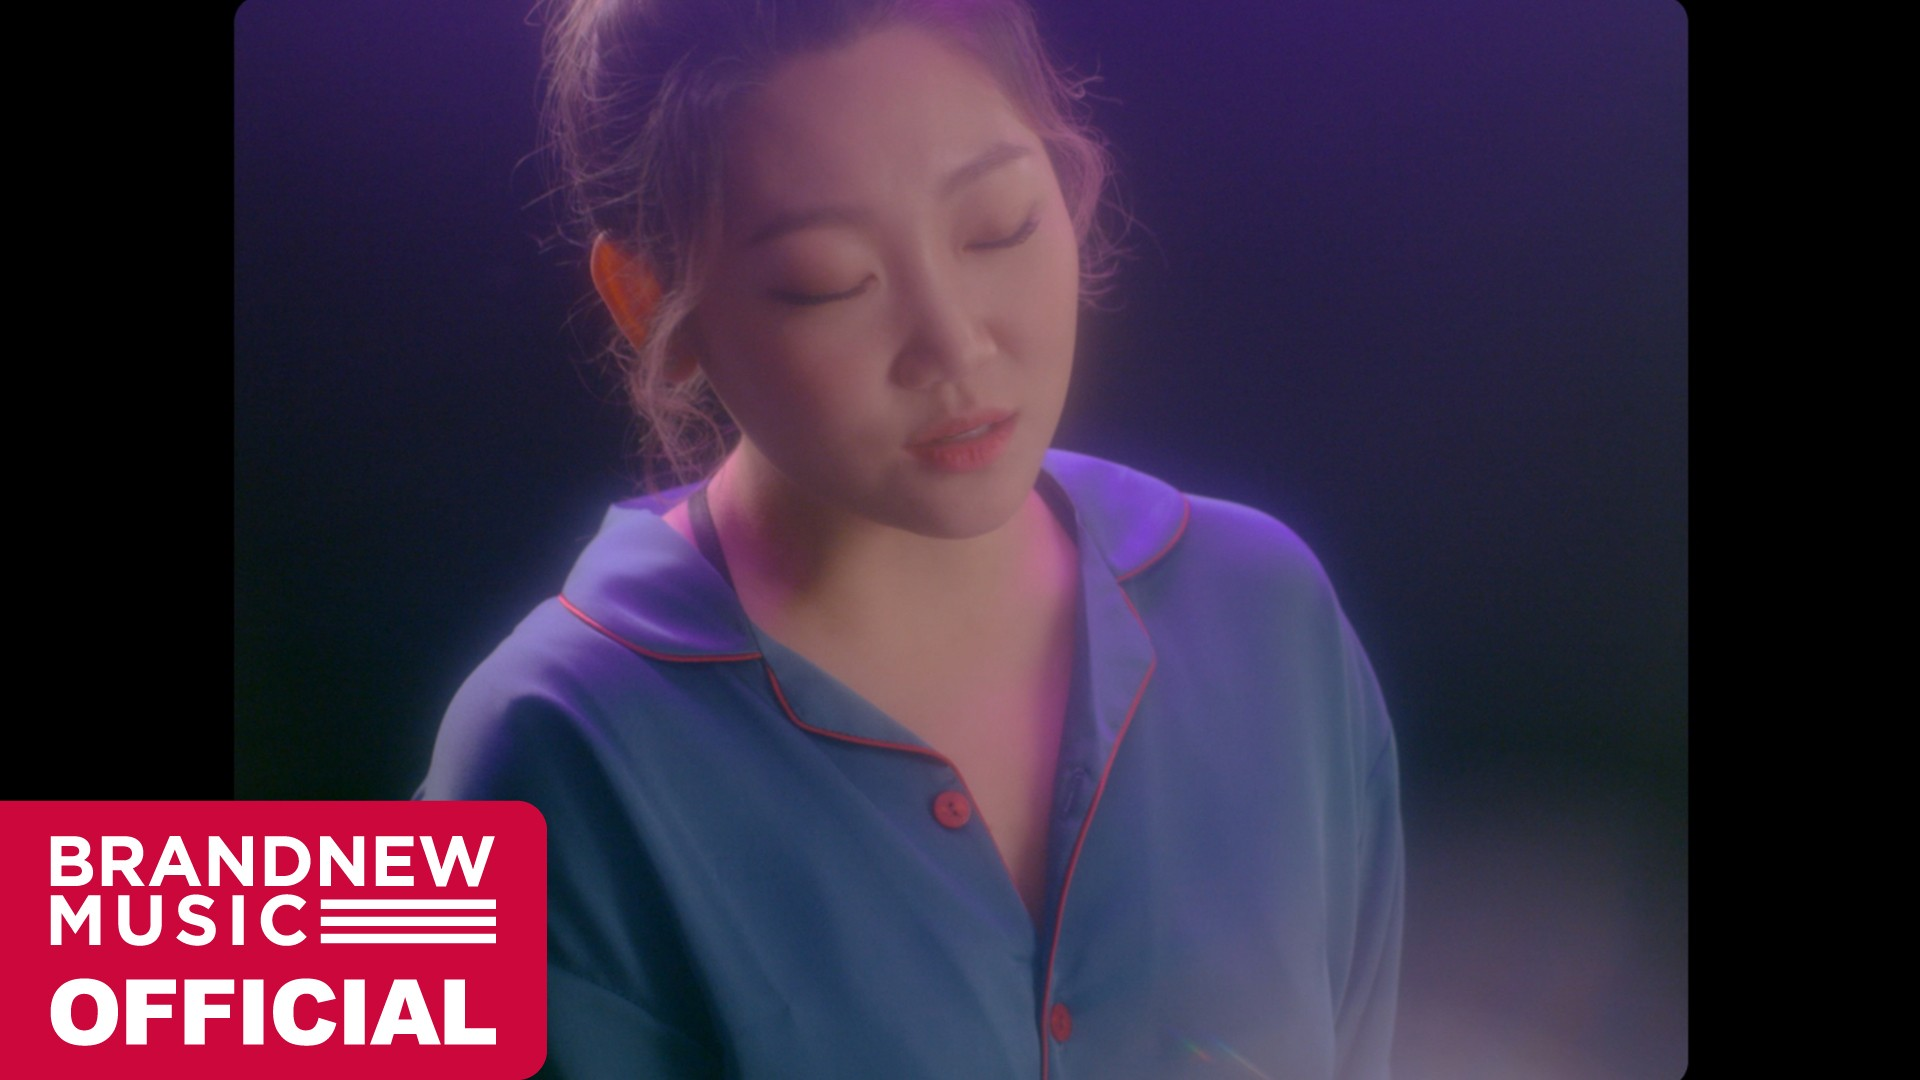 에스나(eSNa) 'Spoon' OFFICIAL M/V